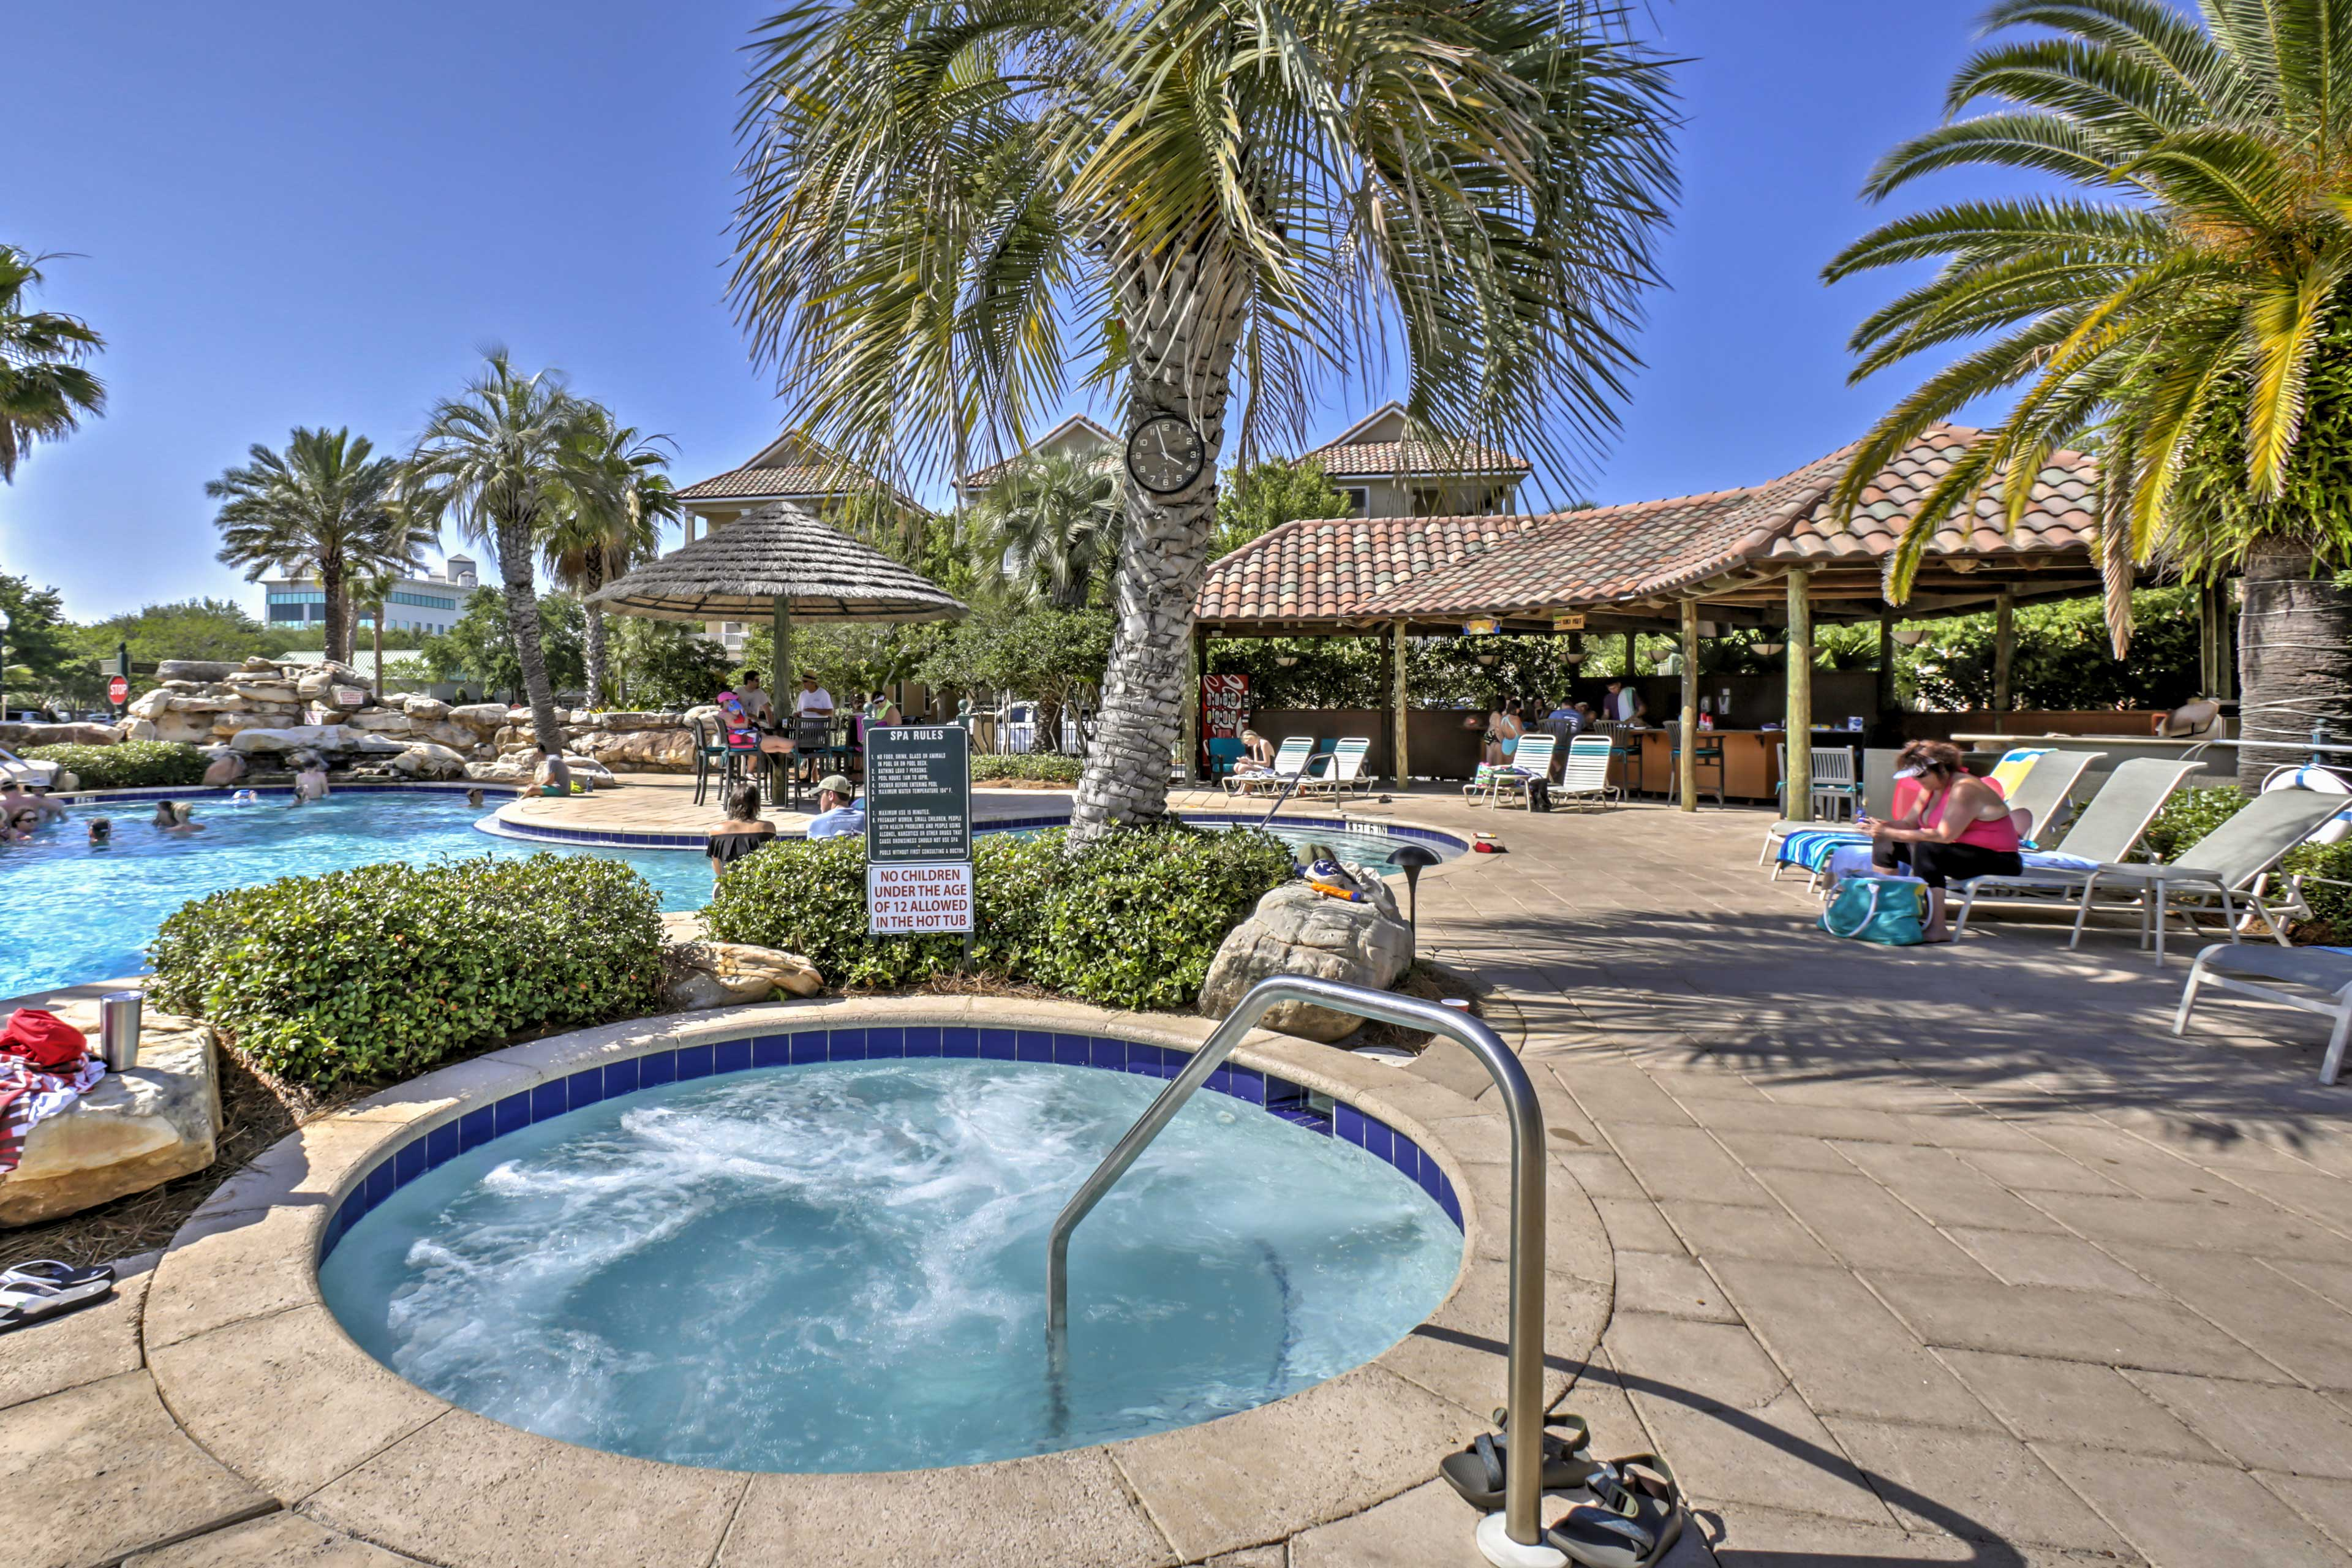 A community pool area across the street adds to the perfection of the home!